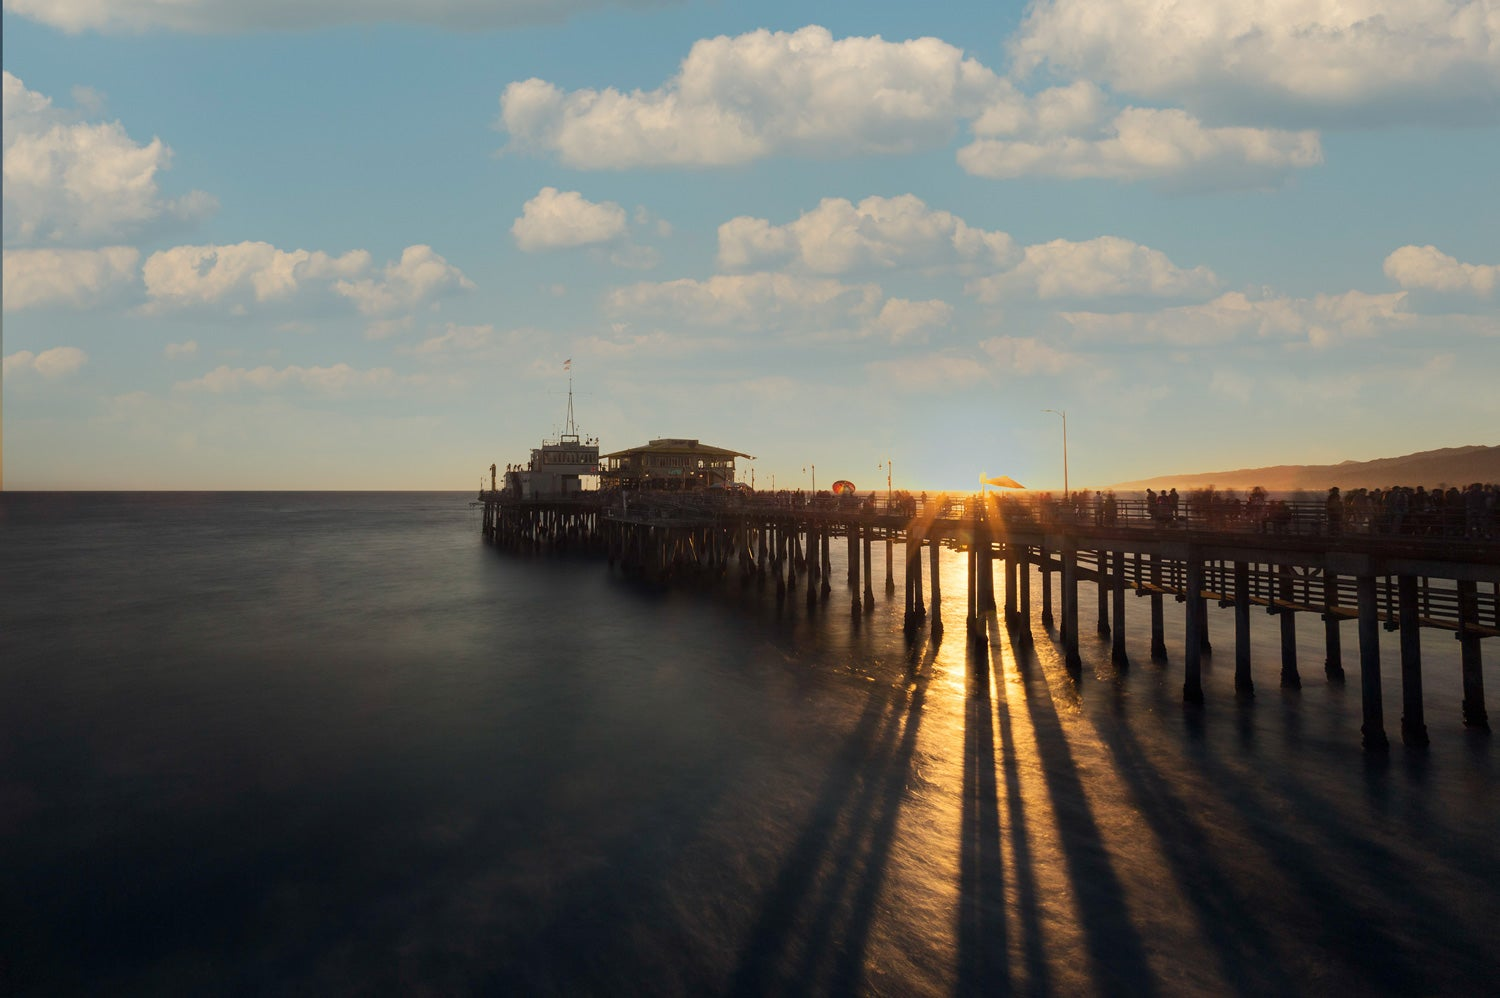 Badly edited photo of a pier during sunset